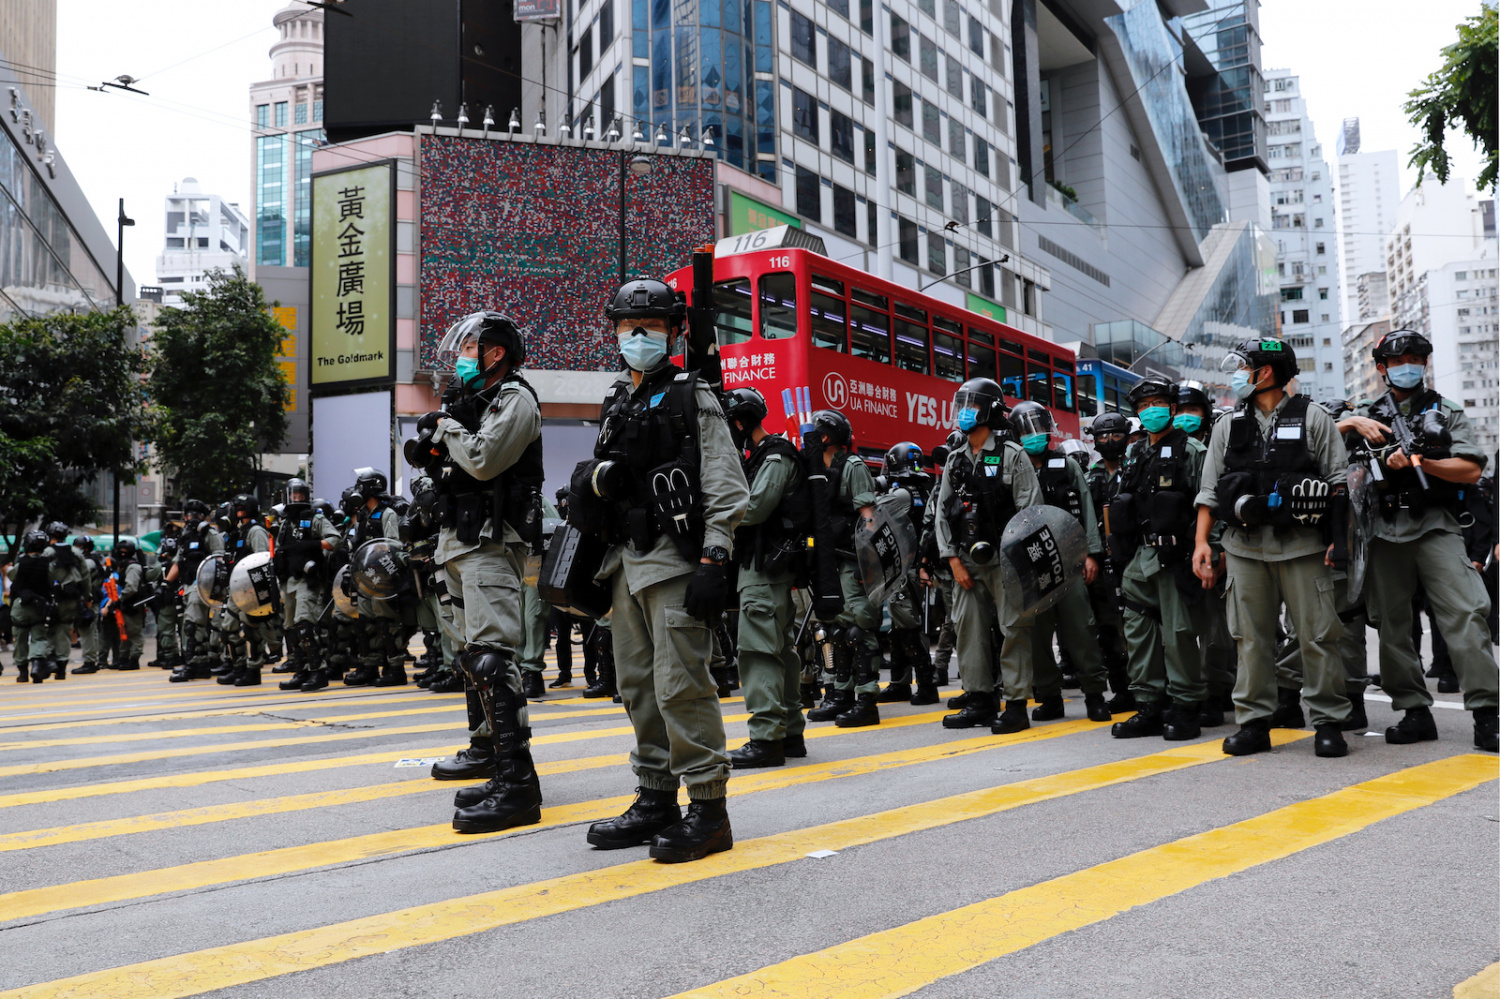 Riot police stand guard during a march against Beijing's plans to impose national security legislation in Hong Kong